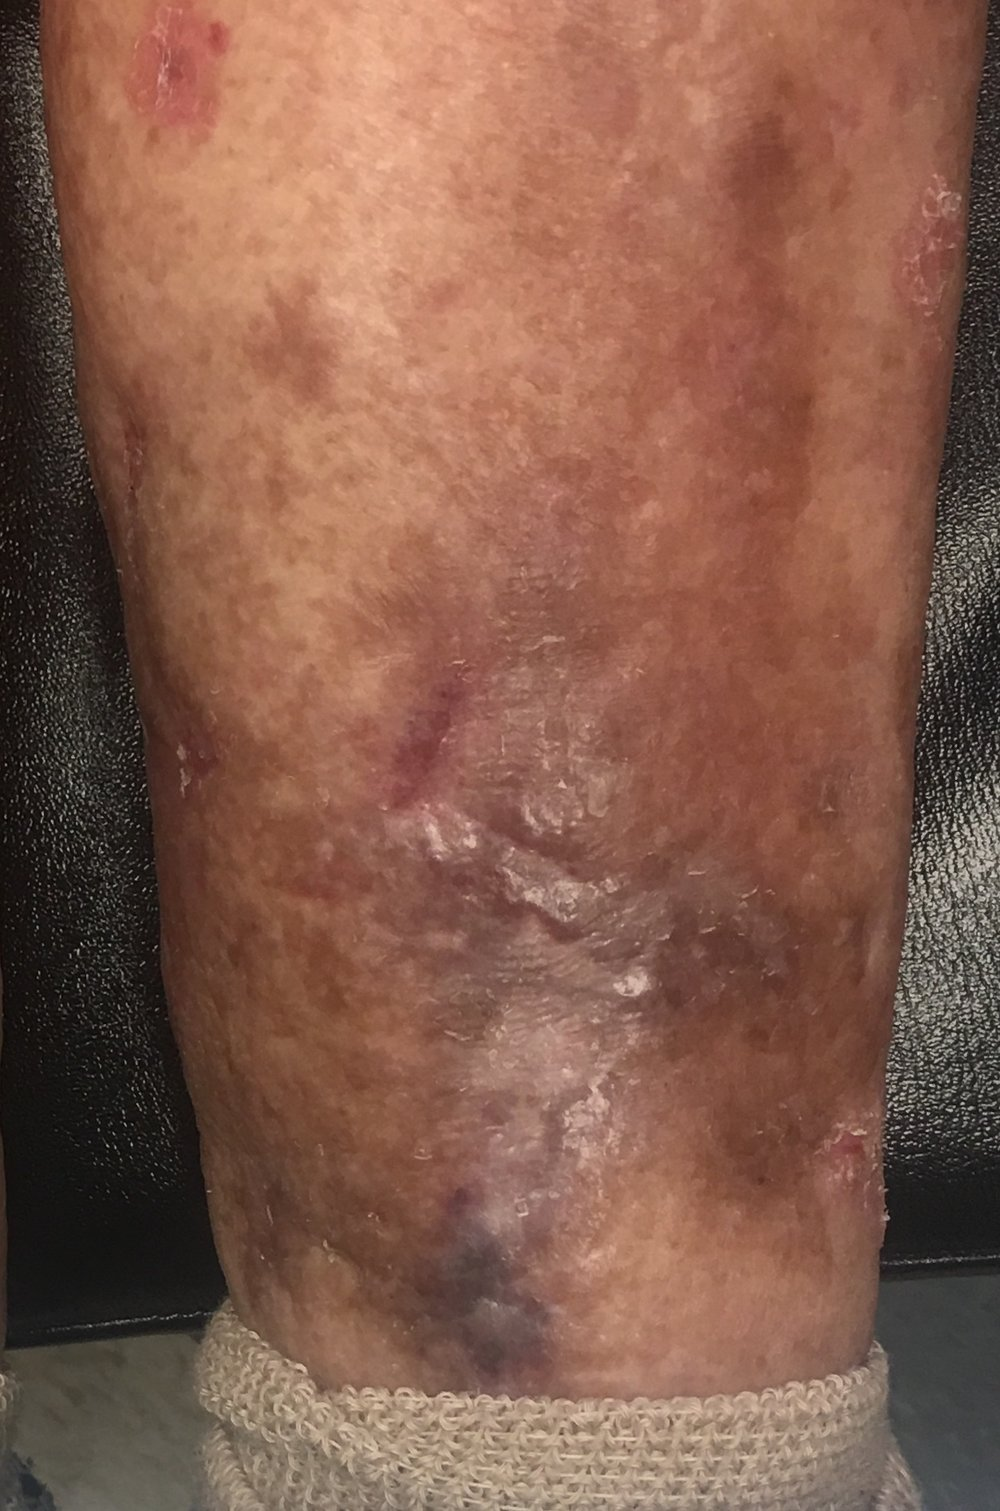 This is a healed skin ulcer following laser ablation and foam sclerosant injected into the diseased veins within the wound. -